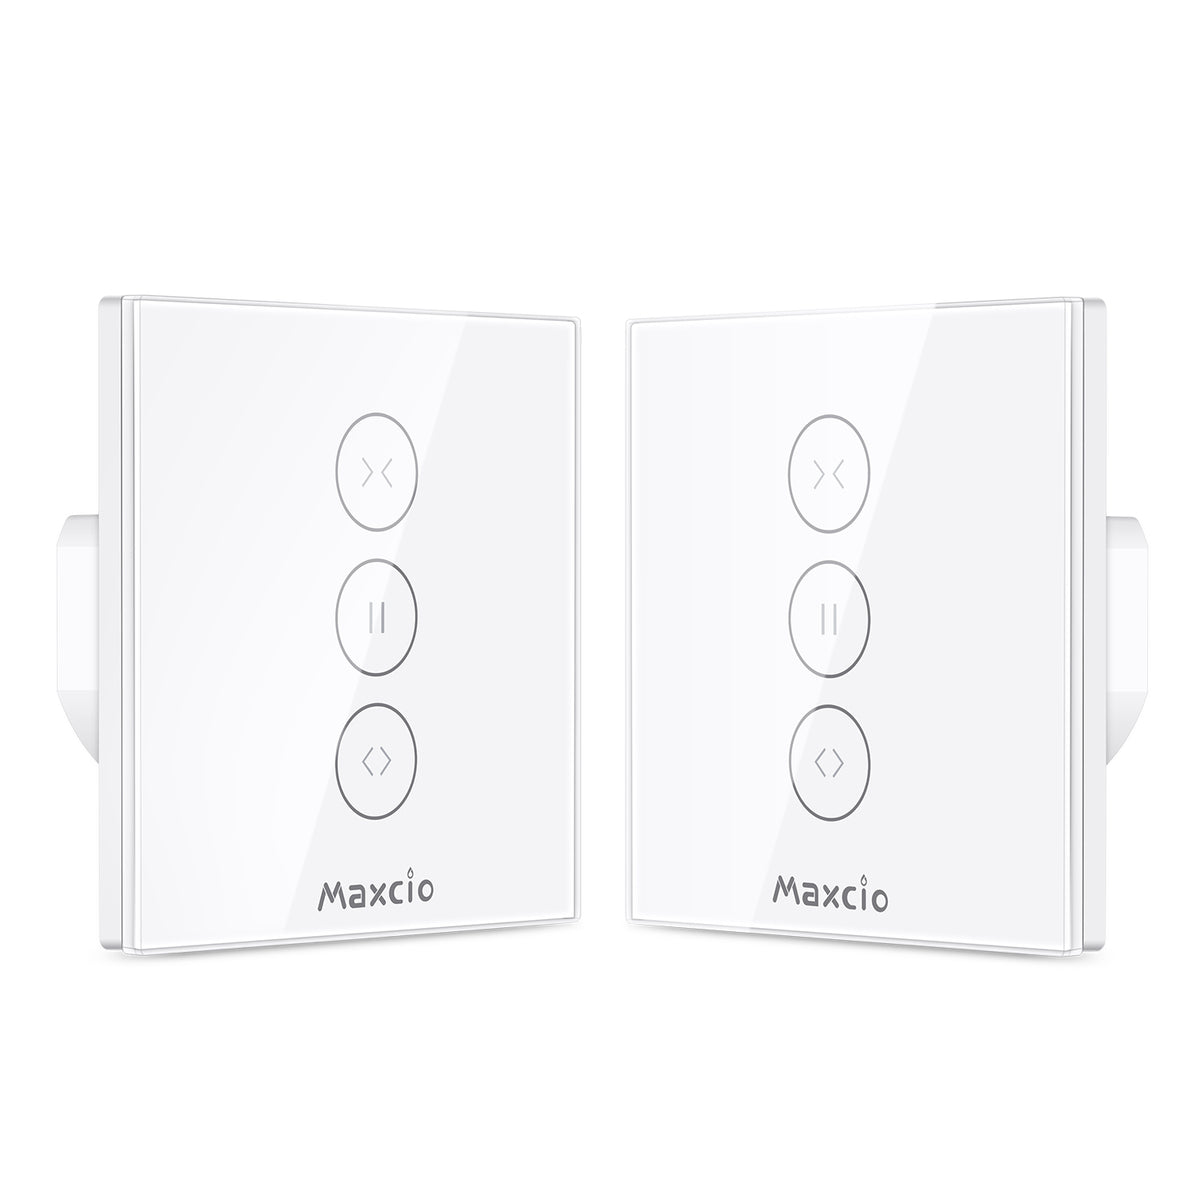 Maxcio Smart Curtain Switch-Horizontal(2 pack)